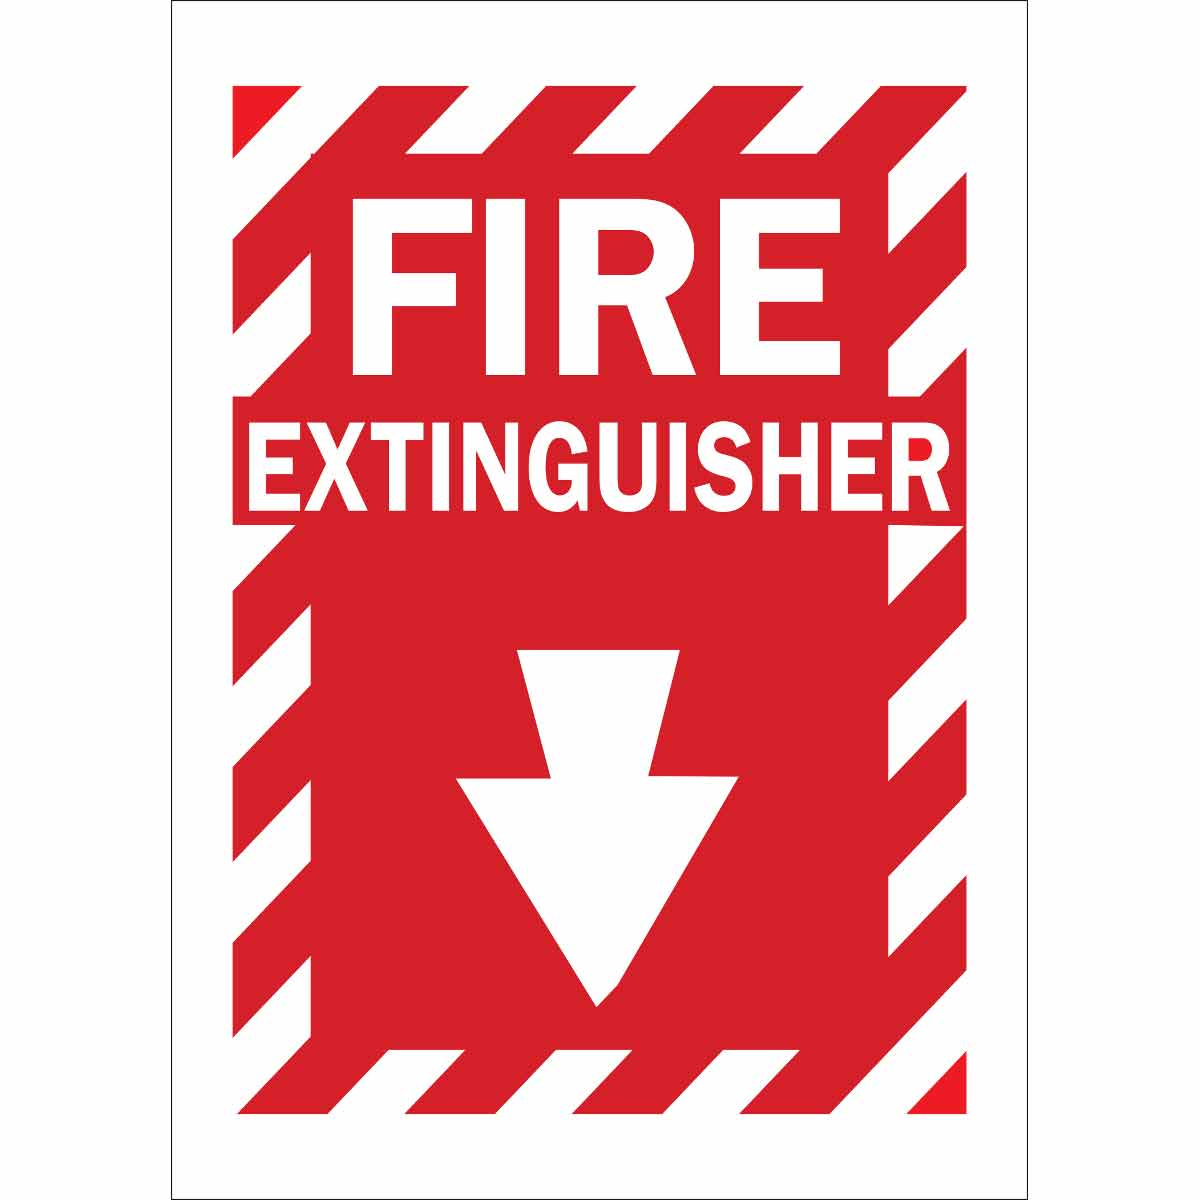 Brady® 69074 Rectangular Fire and Emergency Sign, 14 in H x 10 in W, White on Red, B-120 Fiberglass, Corner Holes Mount